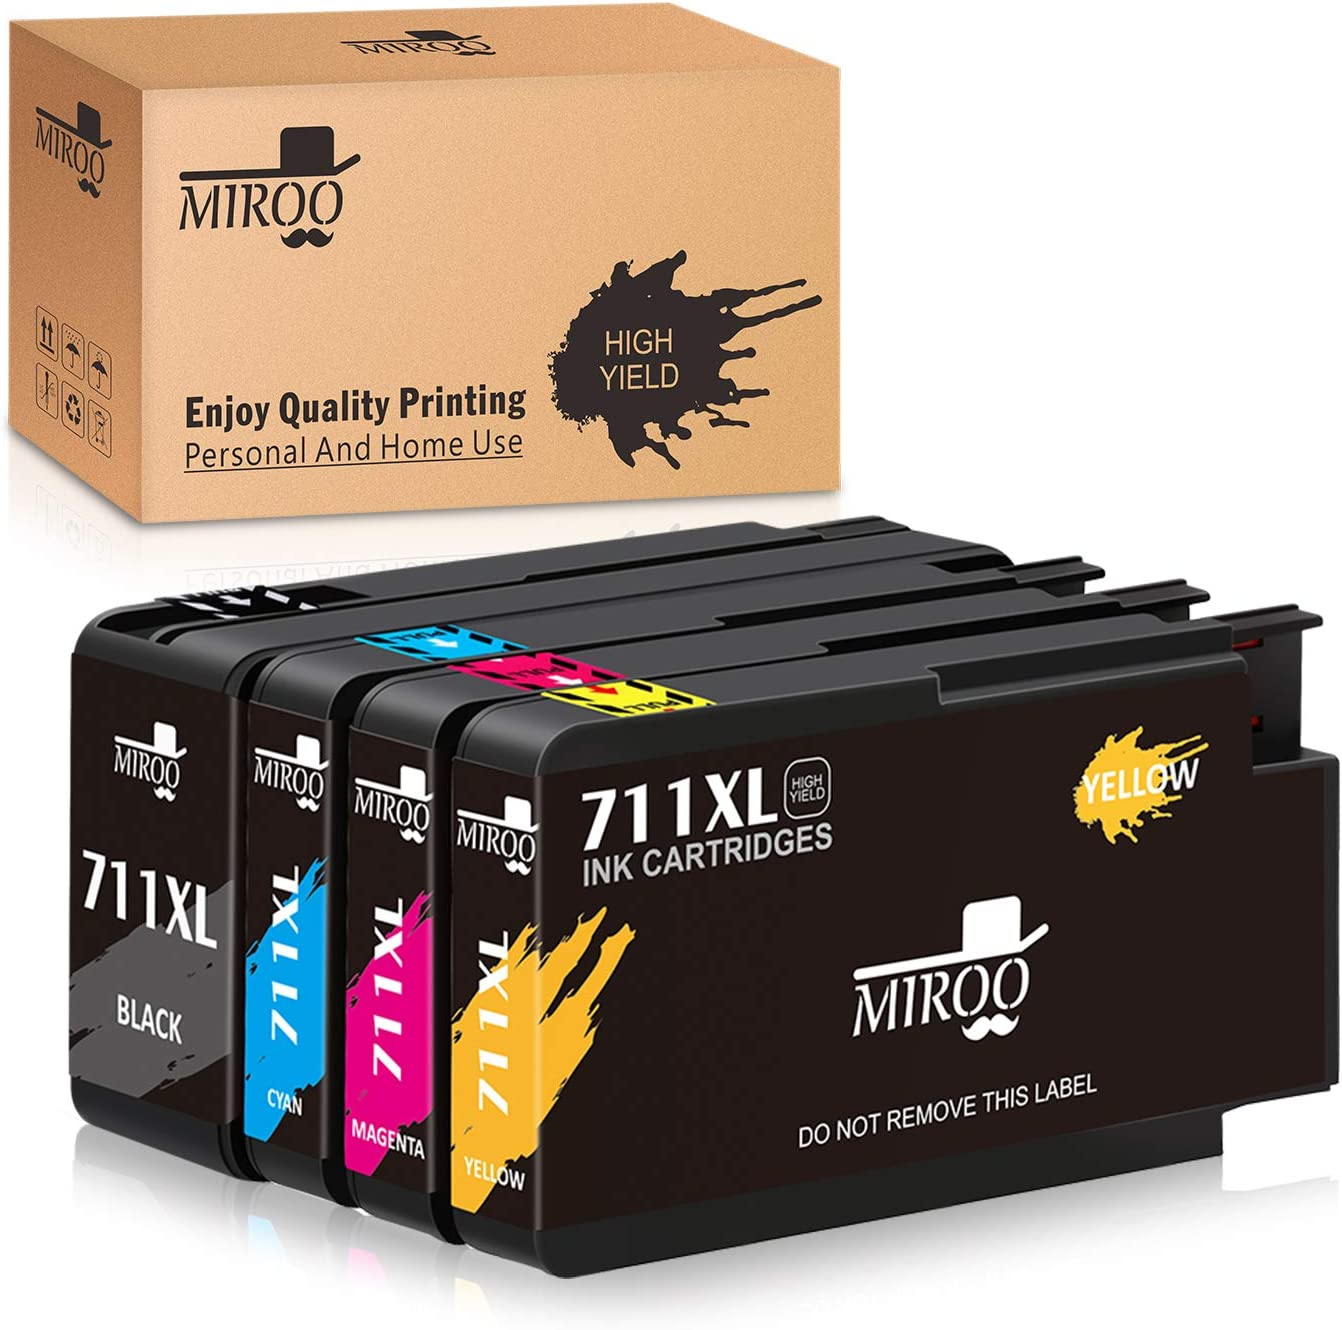 MIROO Compatible Ink Cartridge Replacement for HP 711 711XL ink Cartridge(4-Pack),Worked with HP Designjet T120 T520 Printer